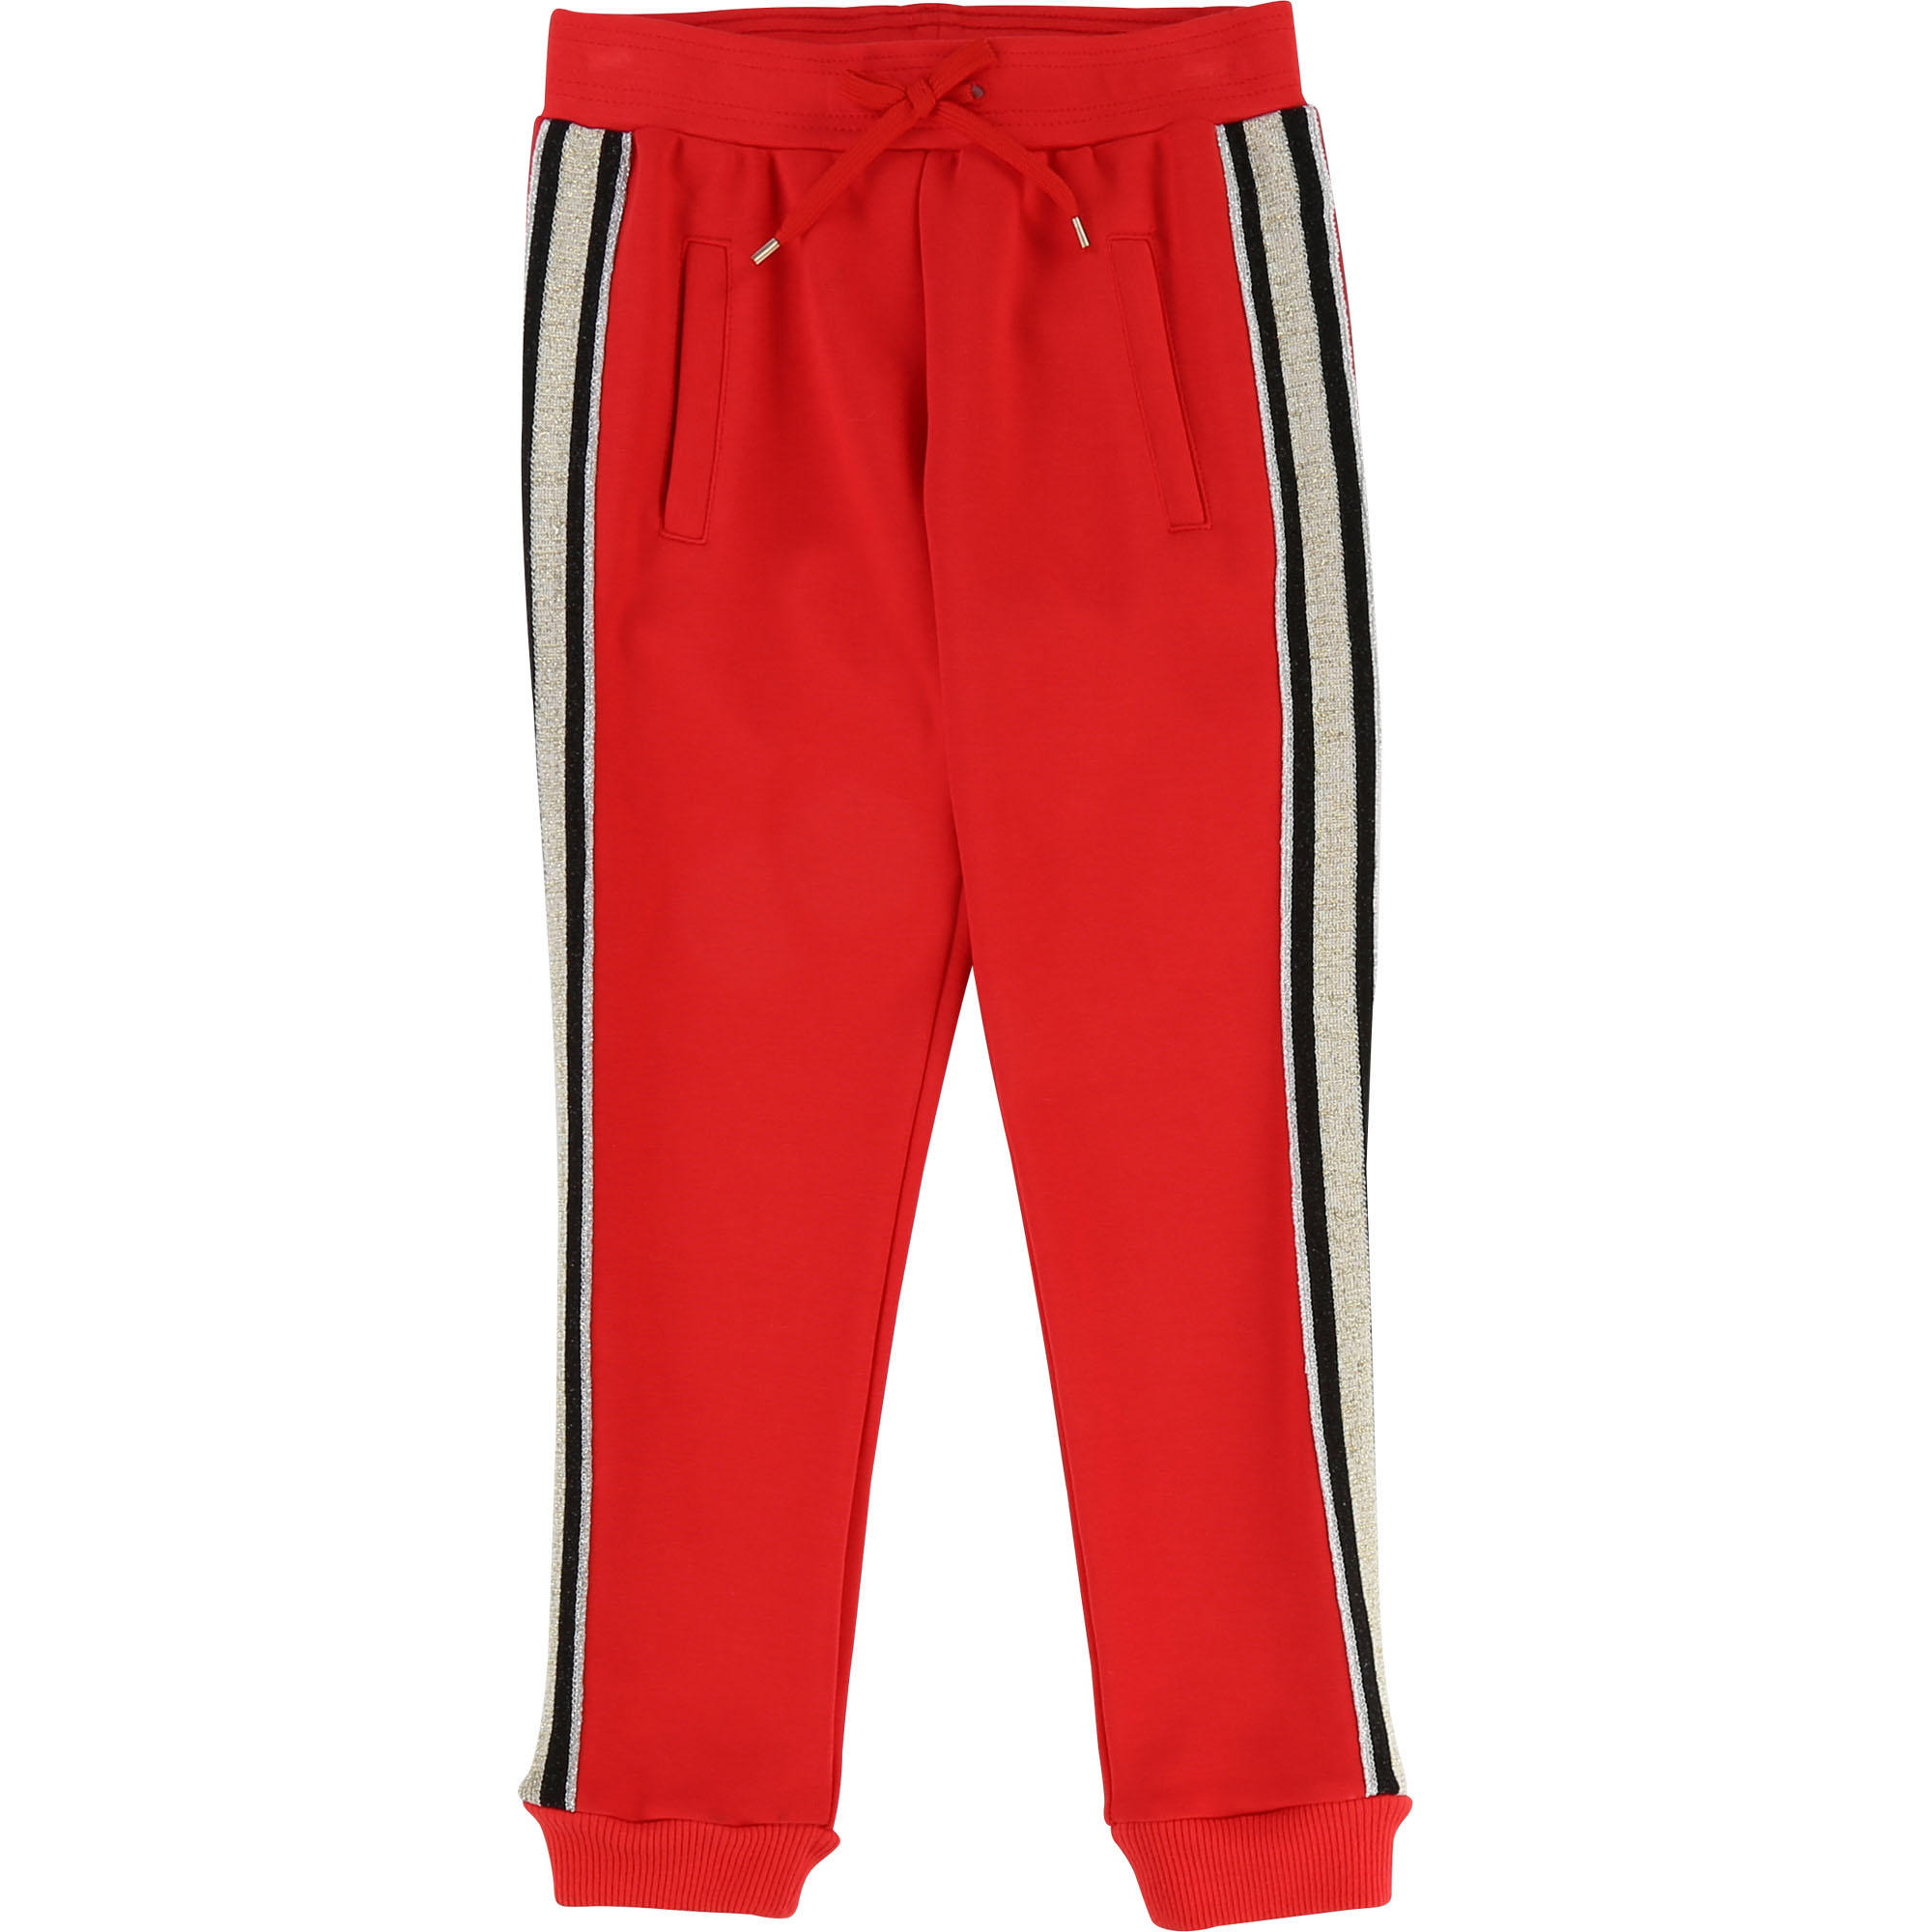 PANTALONE JOGGING THE MARC JACOBS Per BAMBINA